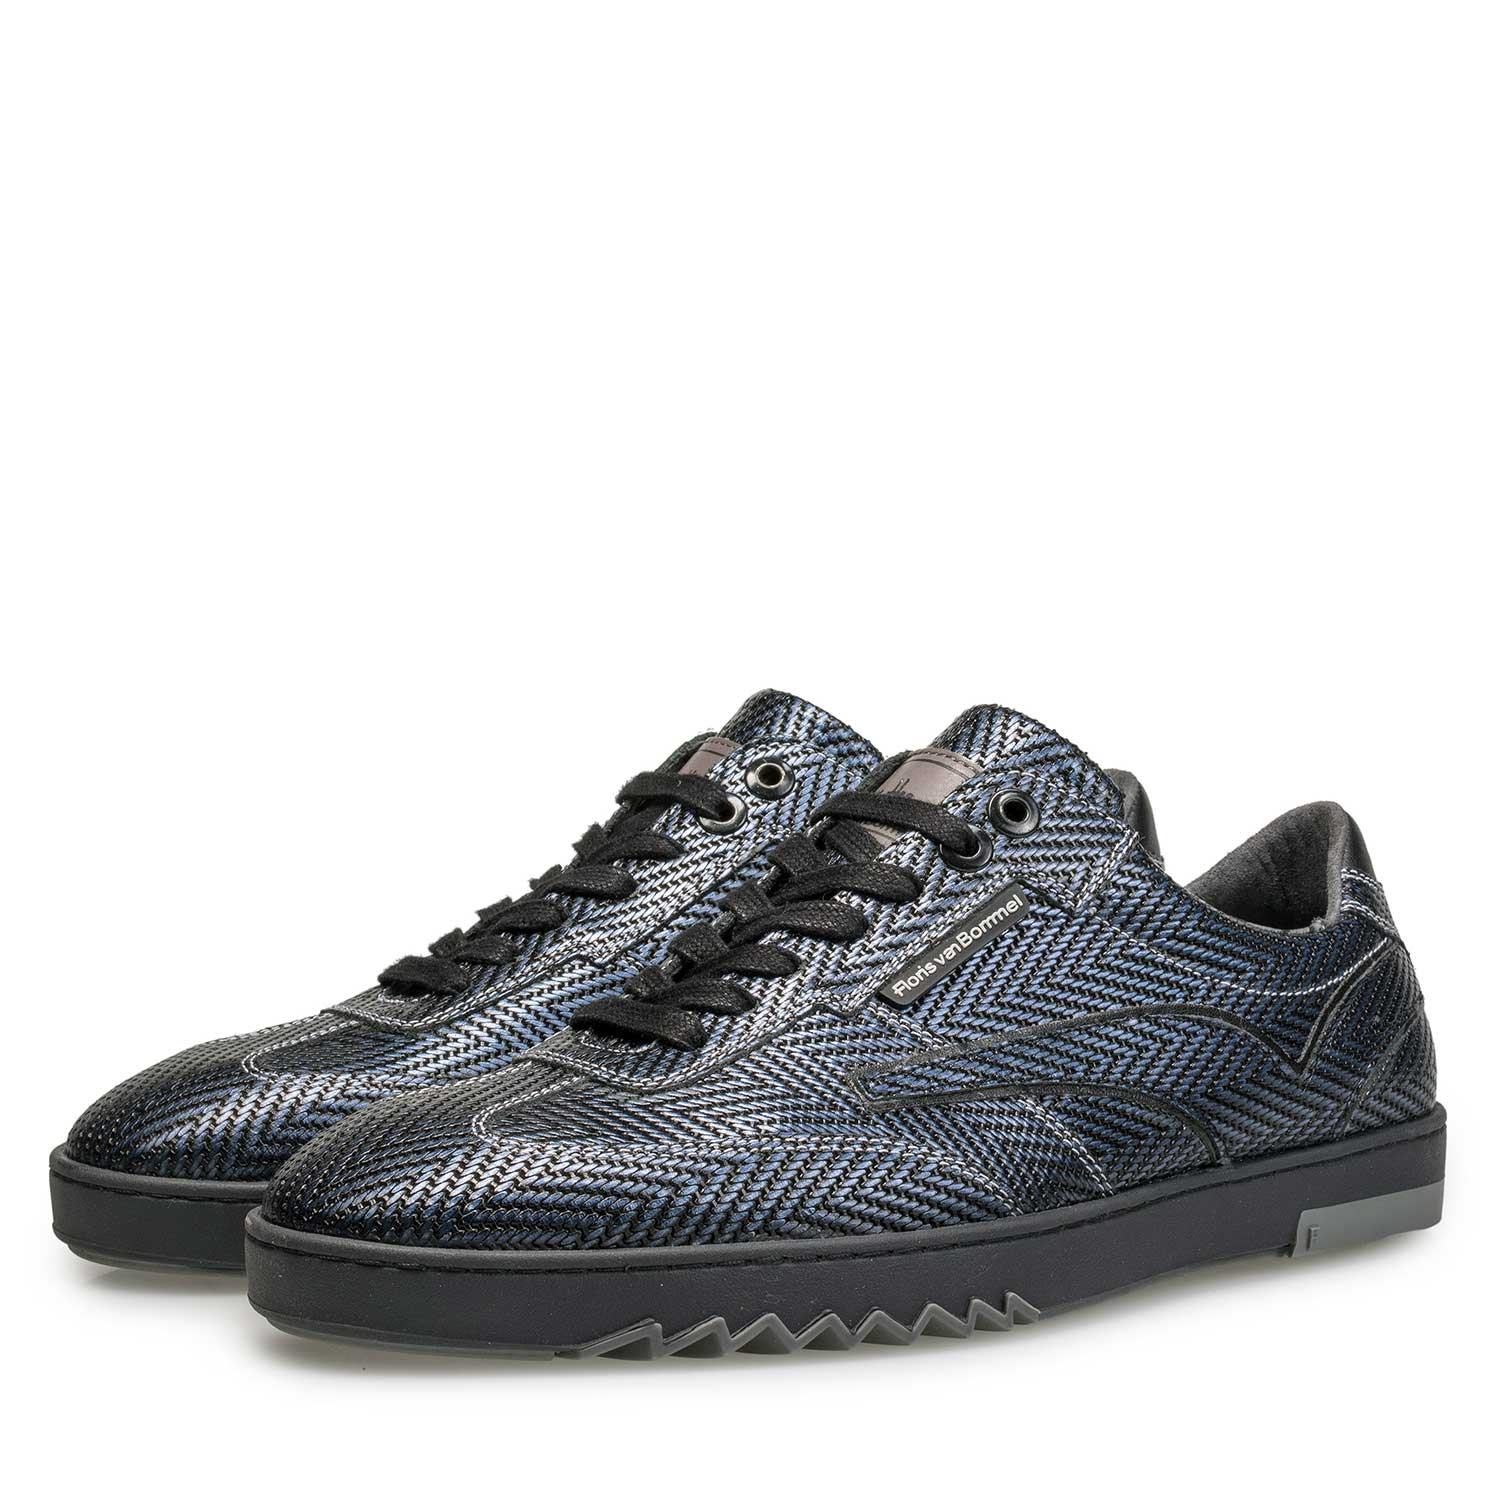 16074/32 - Blue Premium sneaker with herringbone pattern